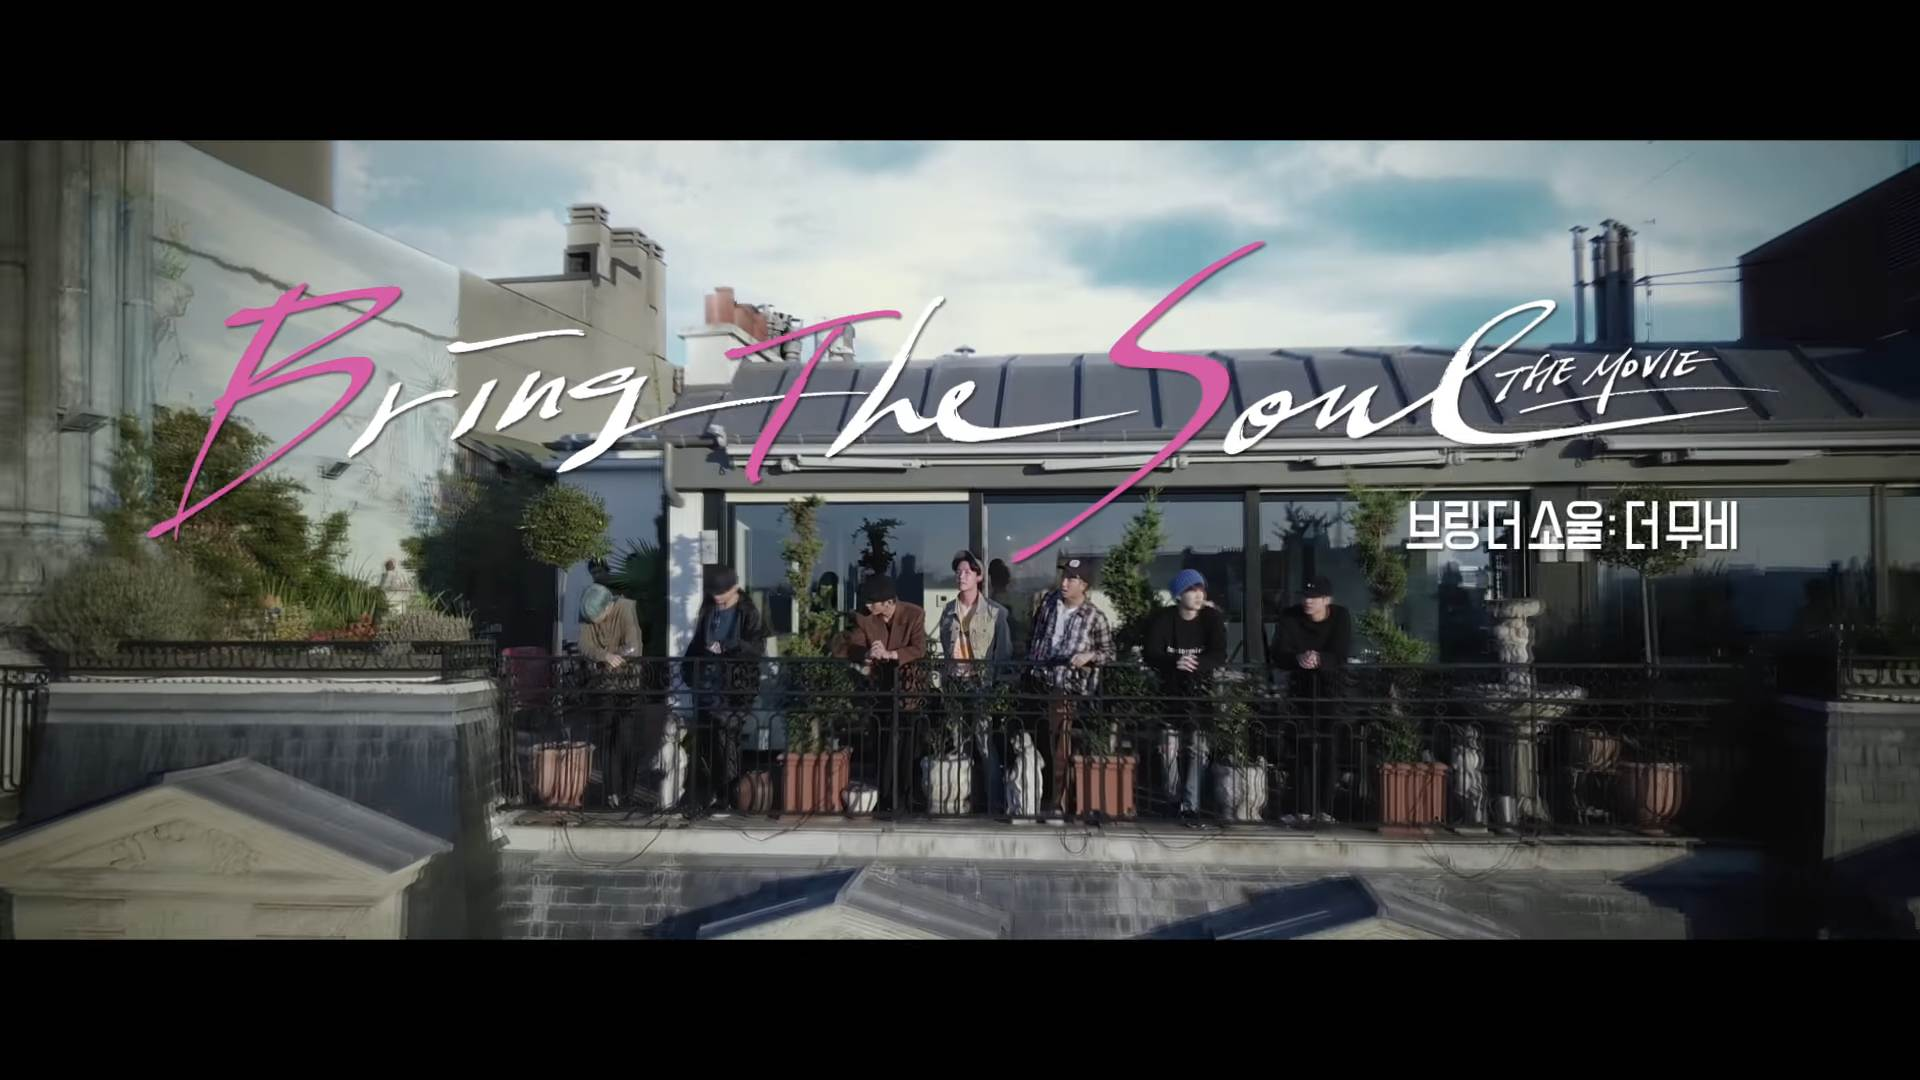 BTS - BRING THE SOUL THE MOVIE